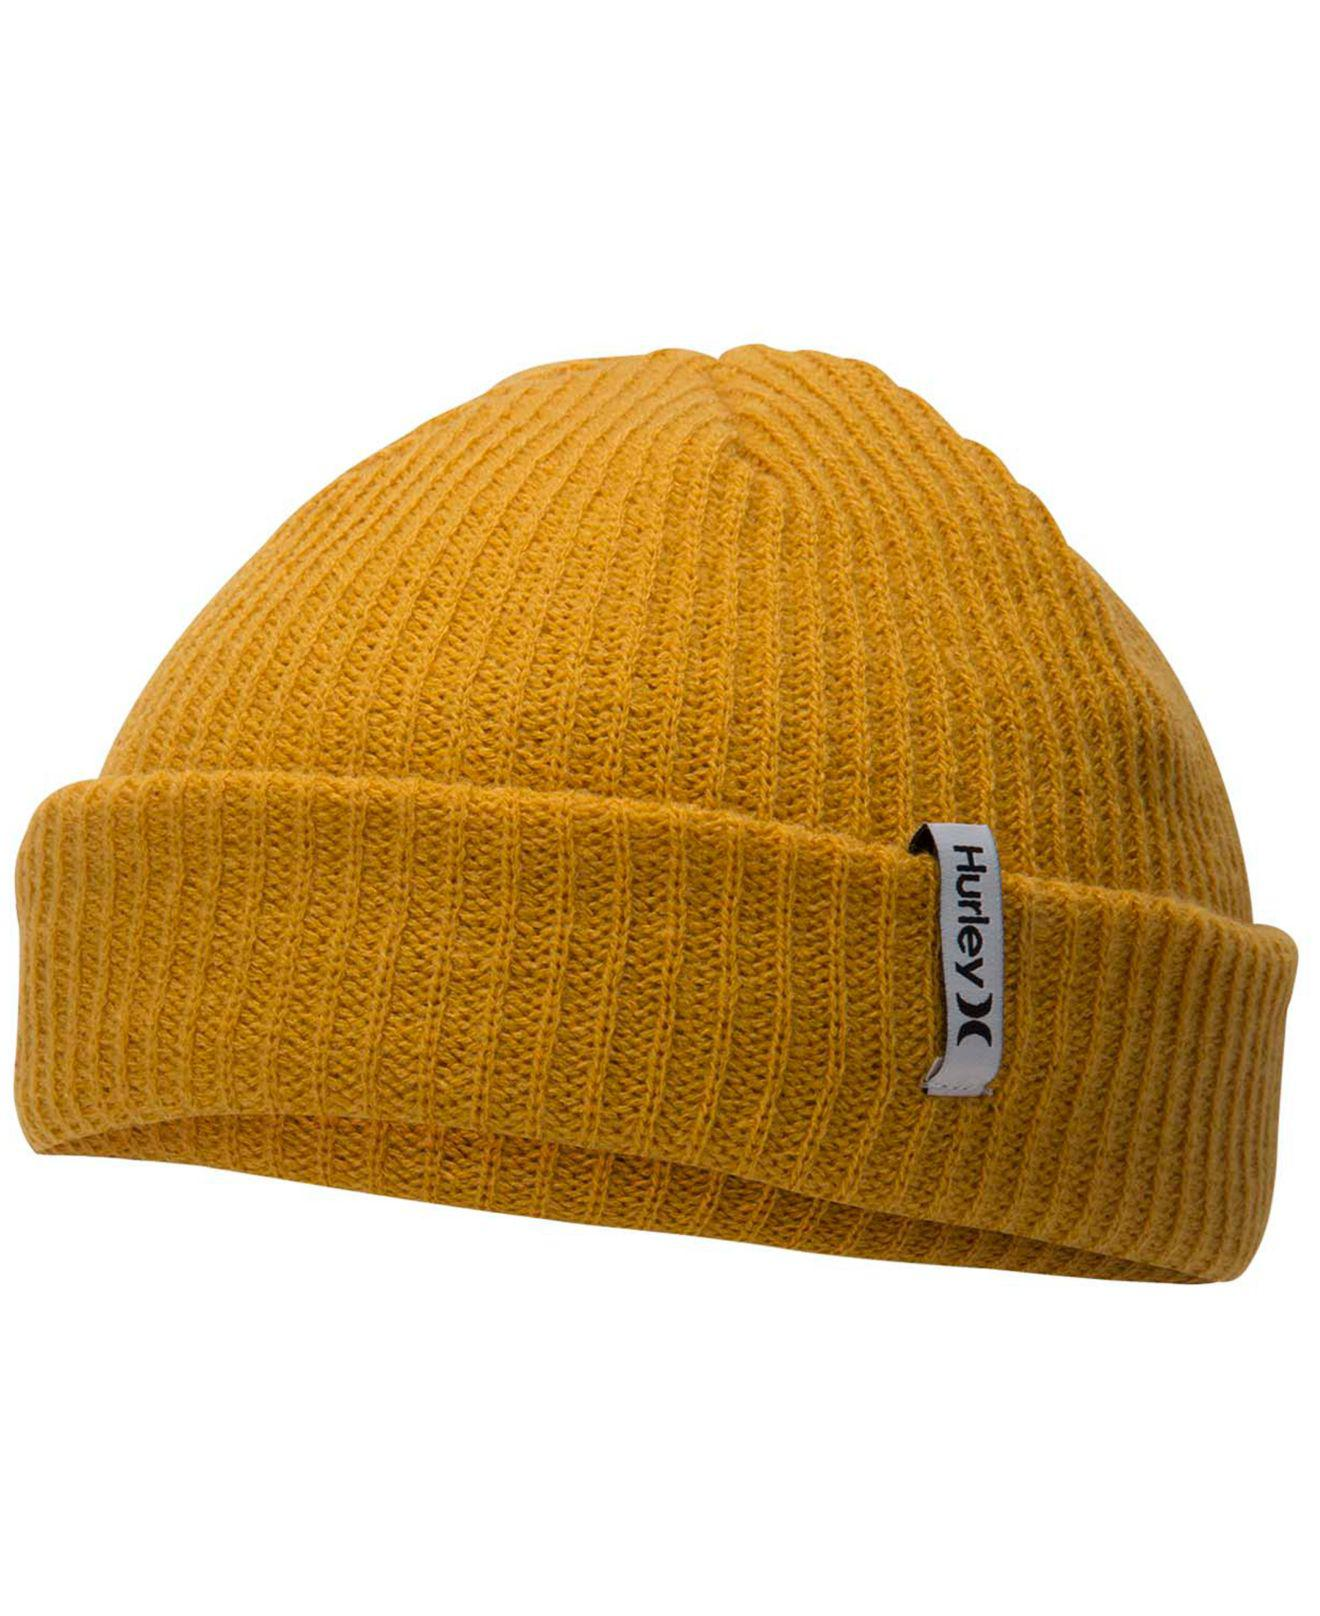 Lyst - Hurley Staple One And Only Beanie in Yellow ff07a385e40f